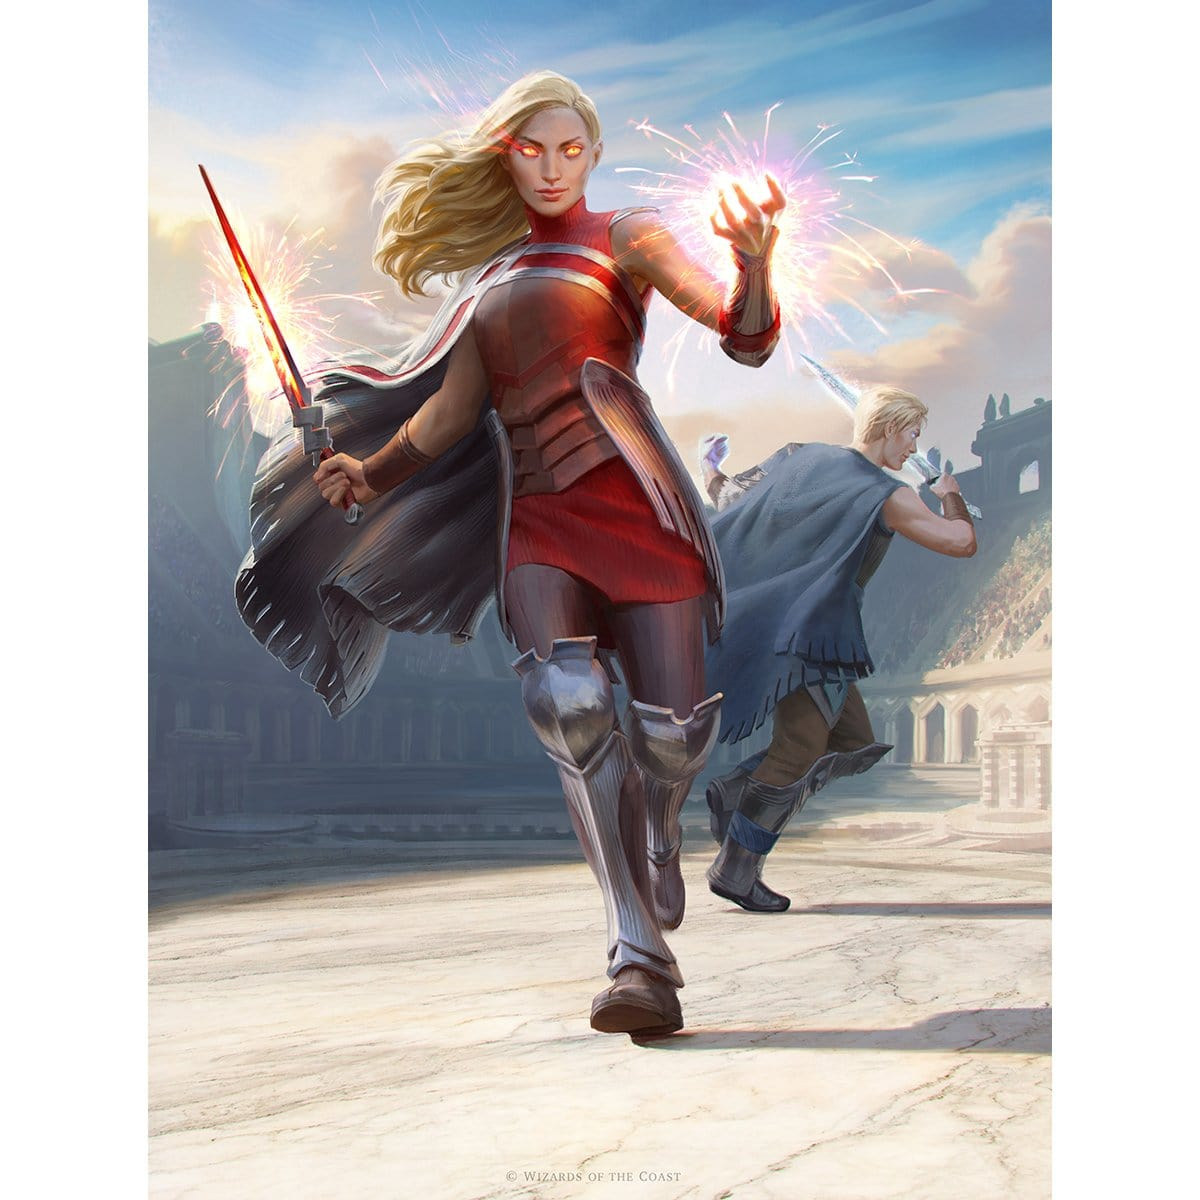 Rowan Kenrith Print - Print - Original Magic Art - Accessories for Magic the Gathering and other card games